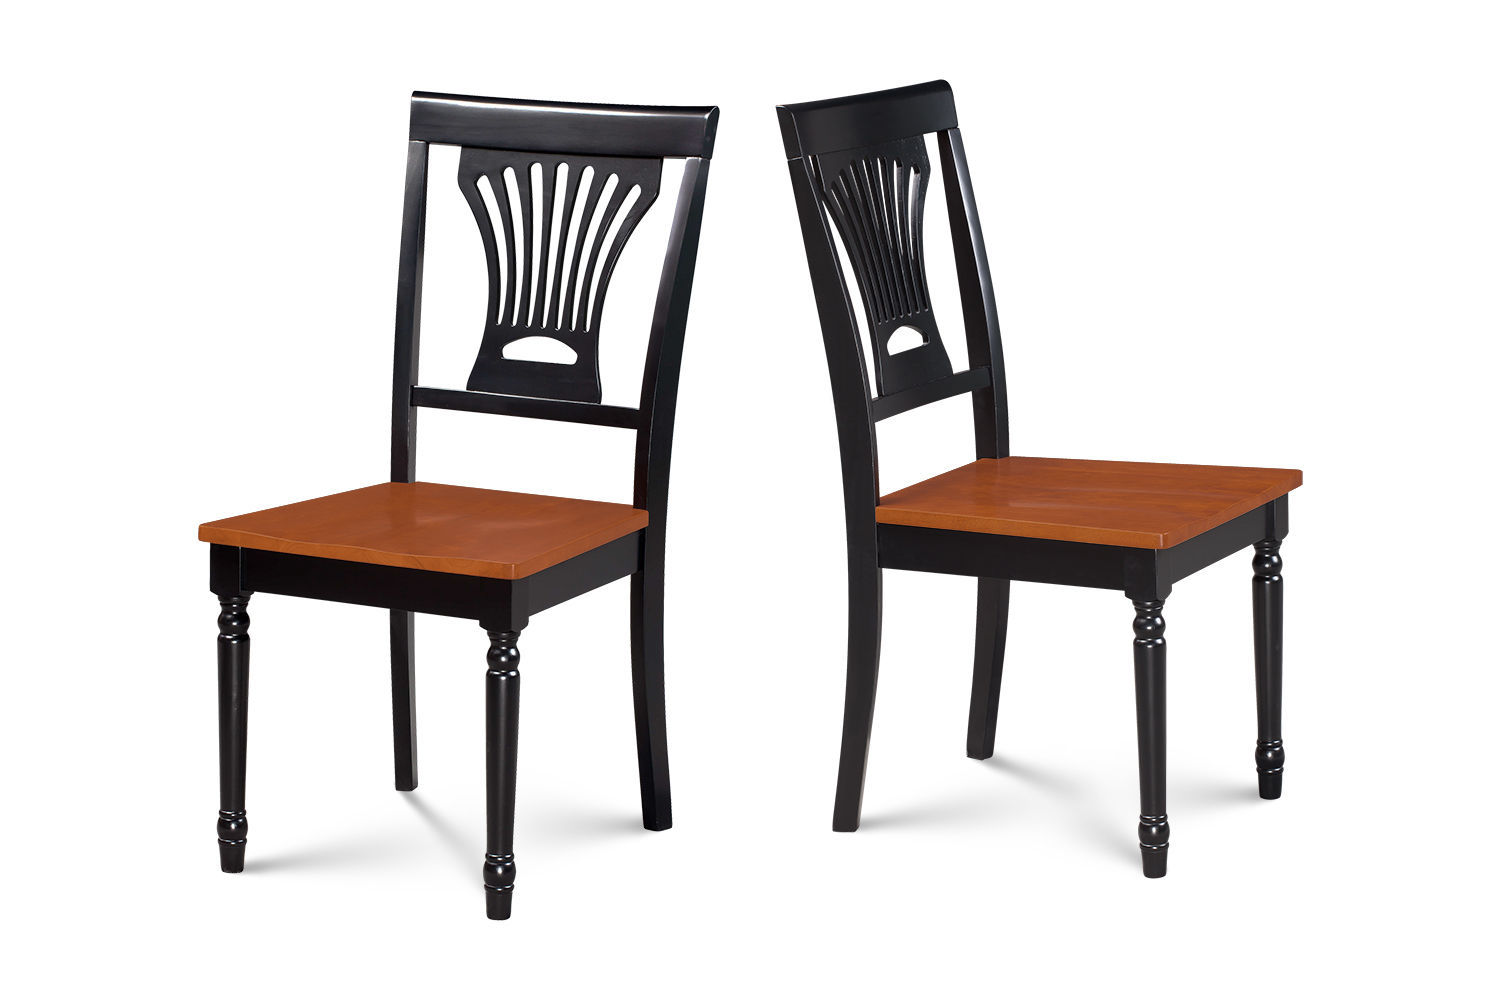 SET OF 8 DINING SIDE CHAIR WITH  WOODEN SEATS IN BLACK & CHERRY FINISH